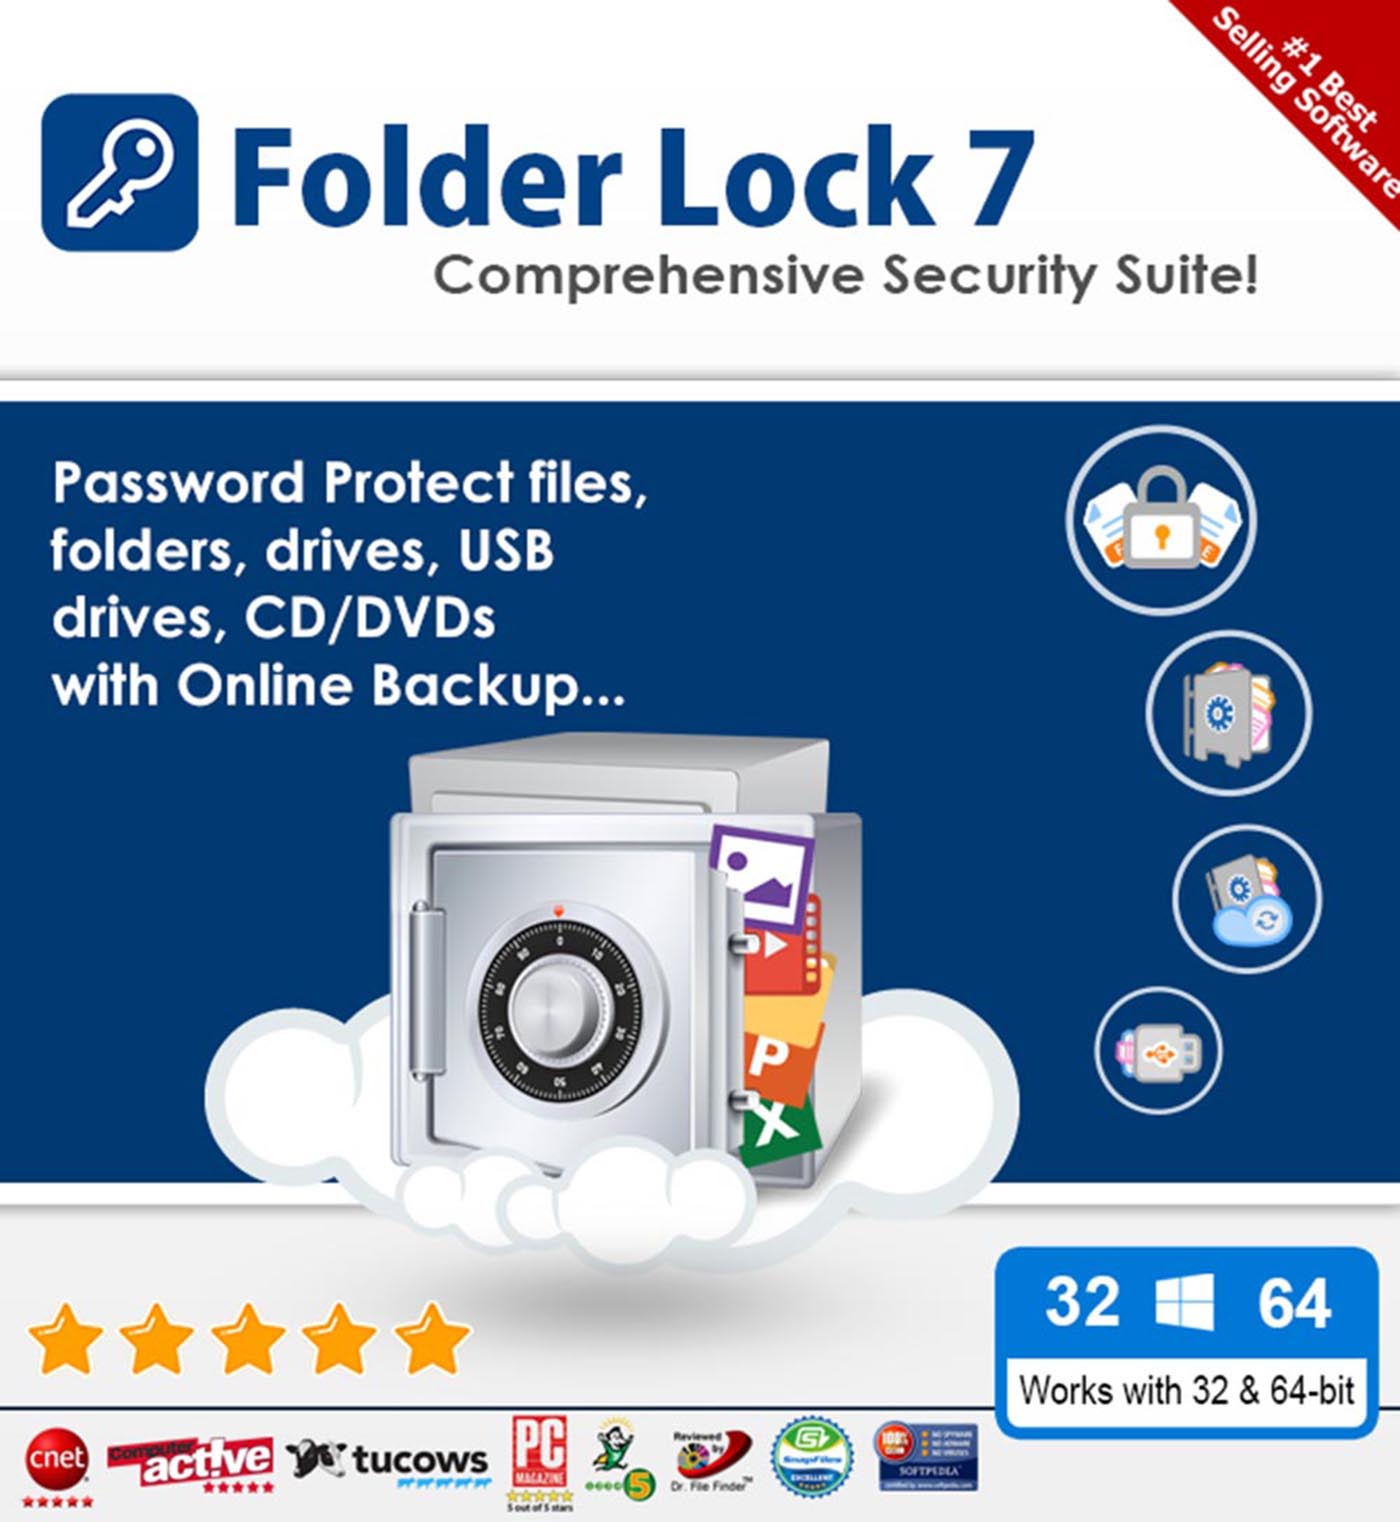 List of the Top 5 folder lock you can buy in 2019